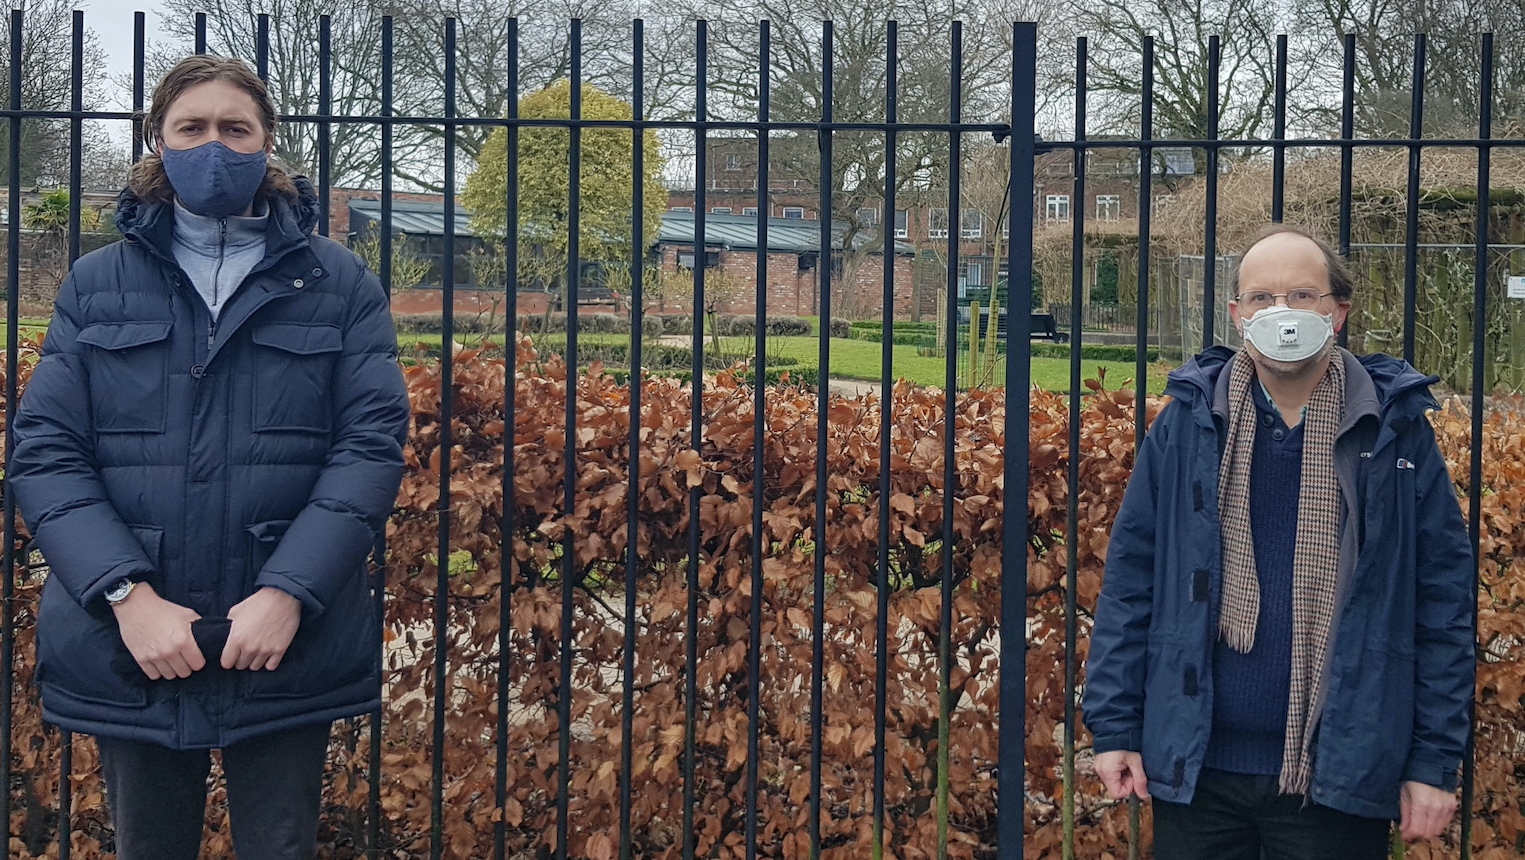 Dan Fieldsend and Cllr Lawrence Brown outside Greenbank Park